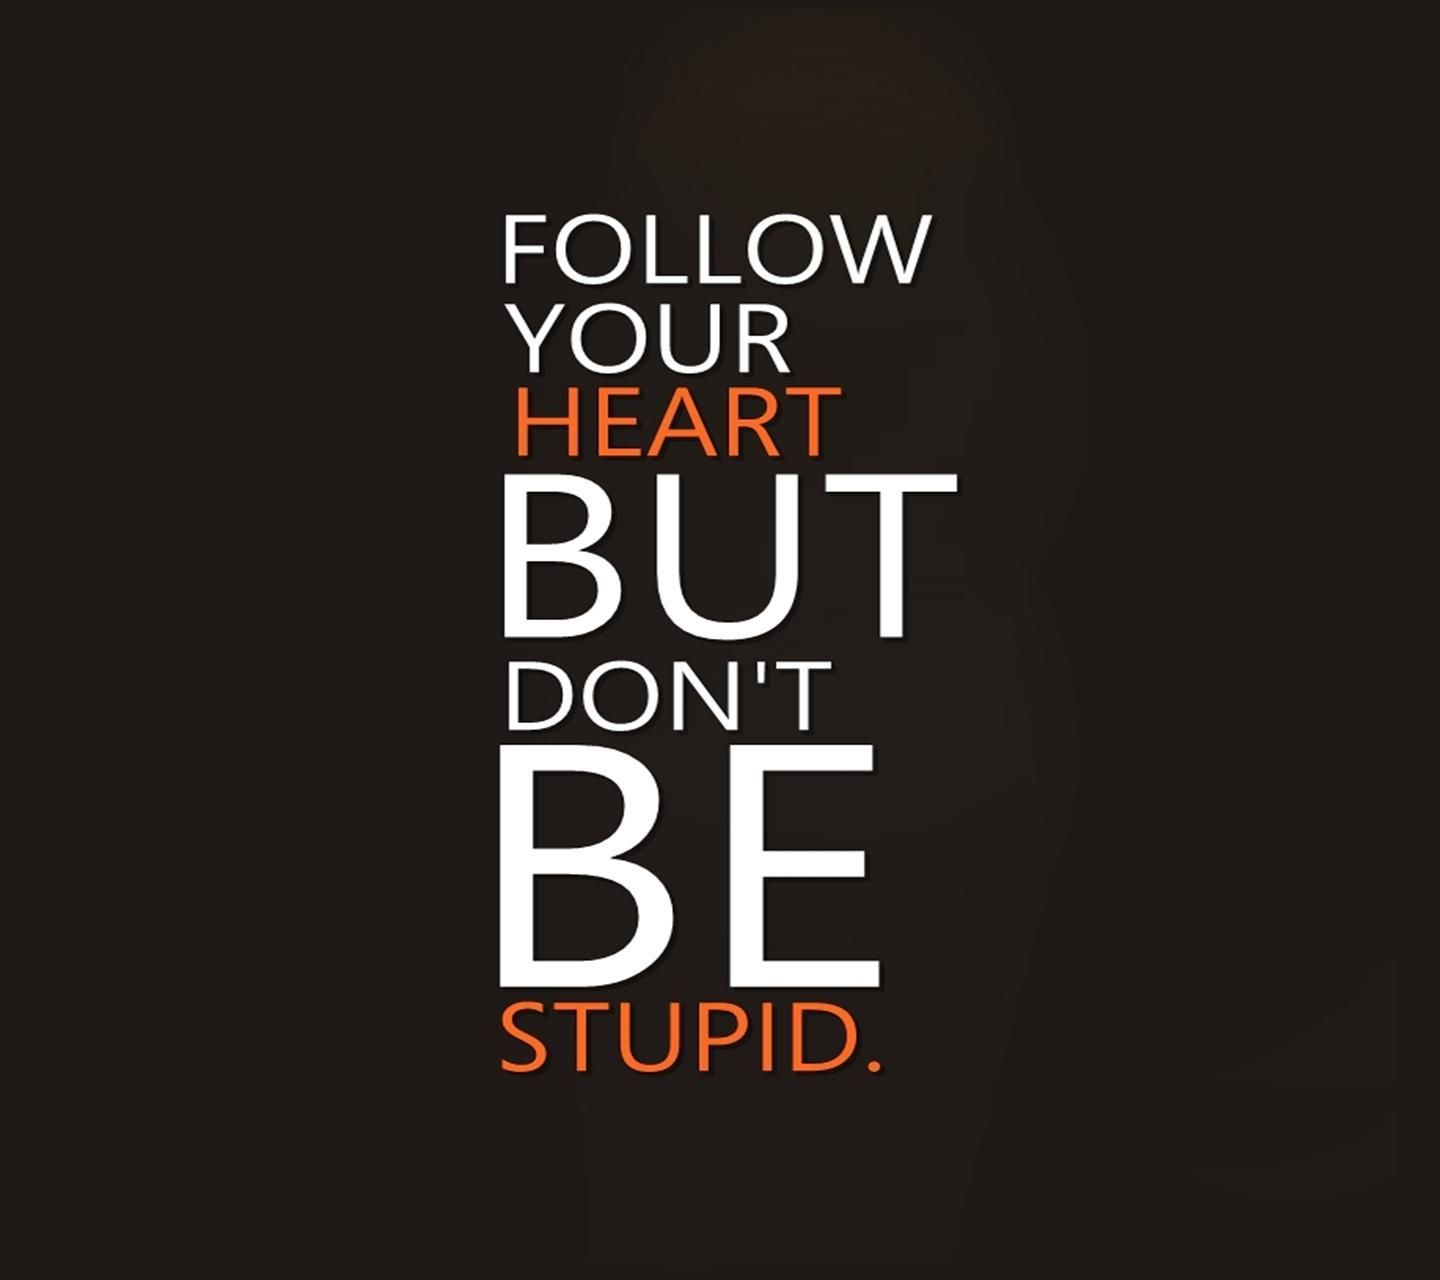 Wallpaper With Quotes On Life For Mobile: Best Funny Mobile Quotes With Images Wallpapers Hd